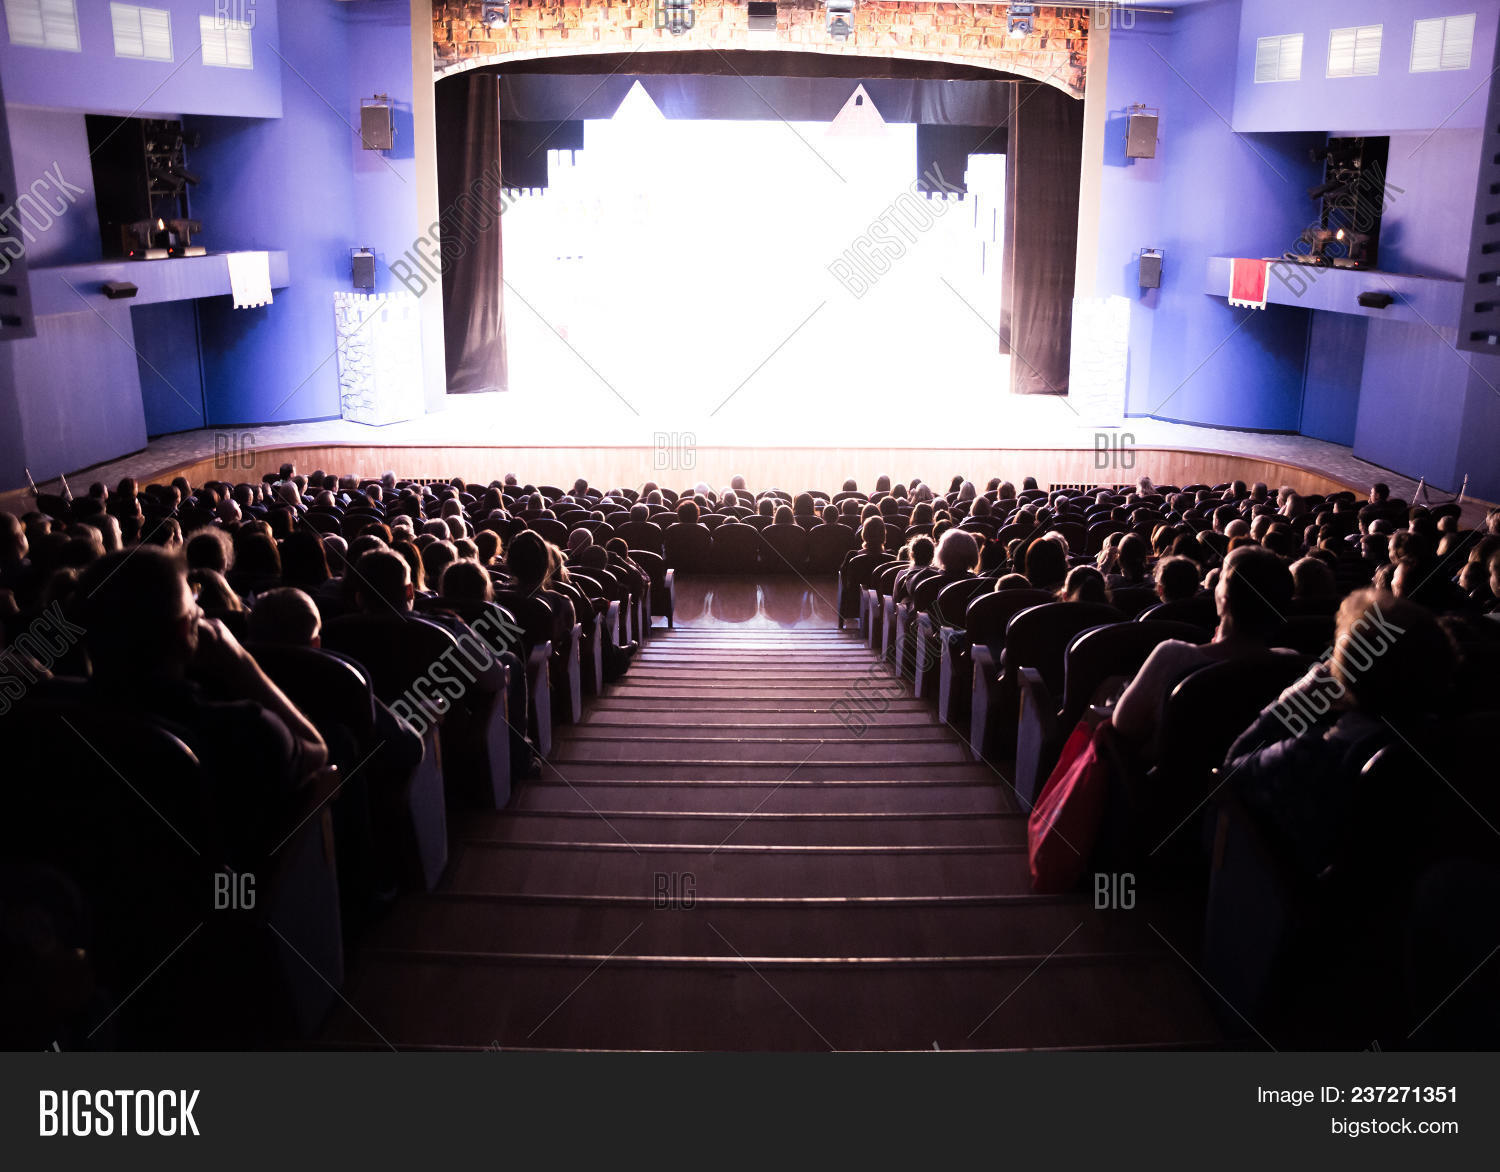 Spectators In The Theater Or In The Cinema Children And Adults Full House 237271351 Image Stock Photo